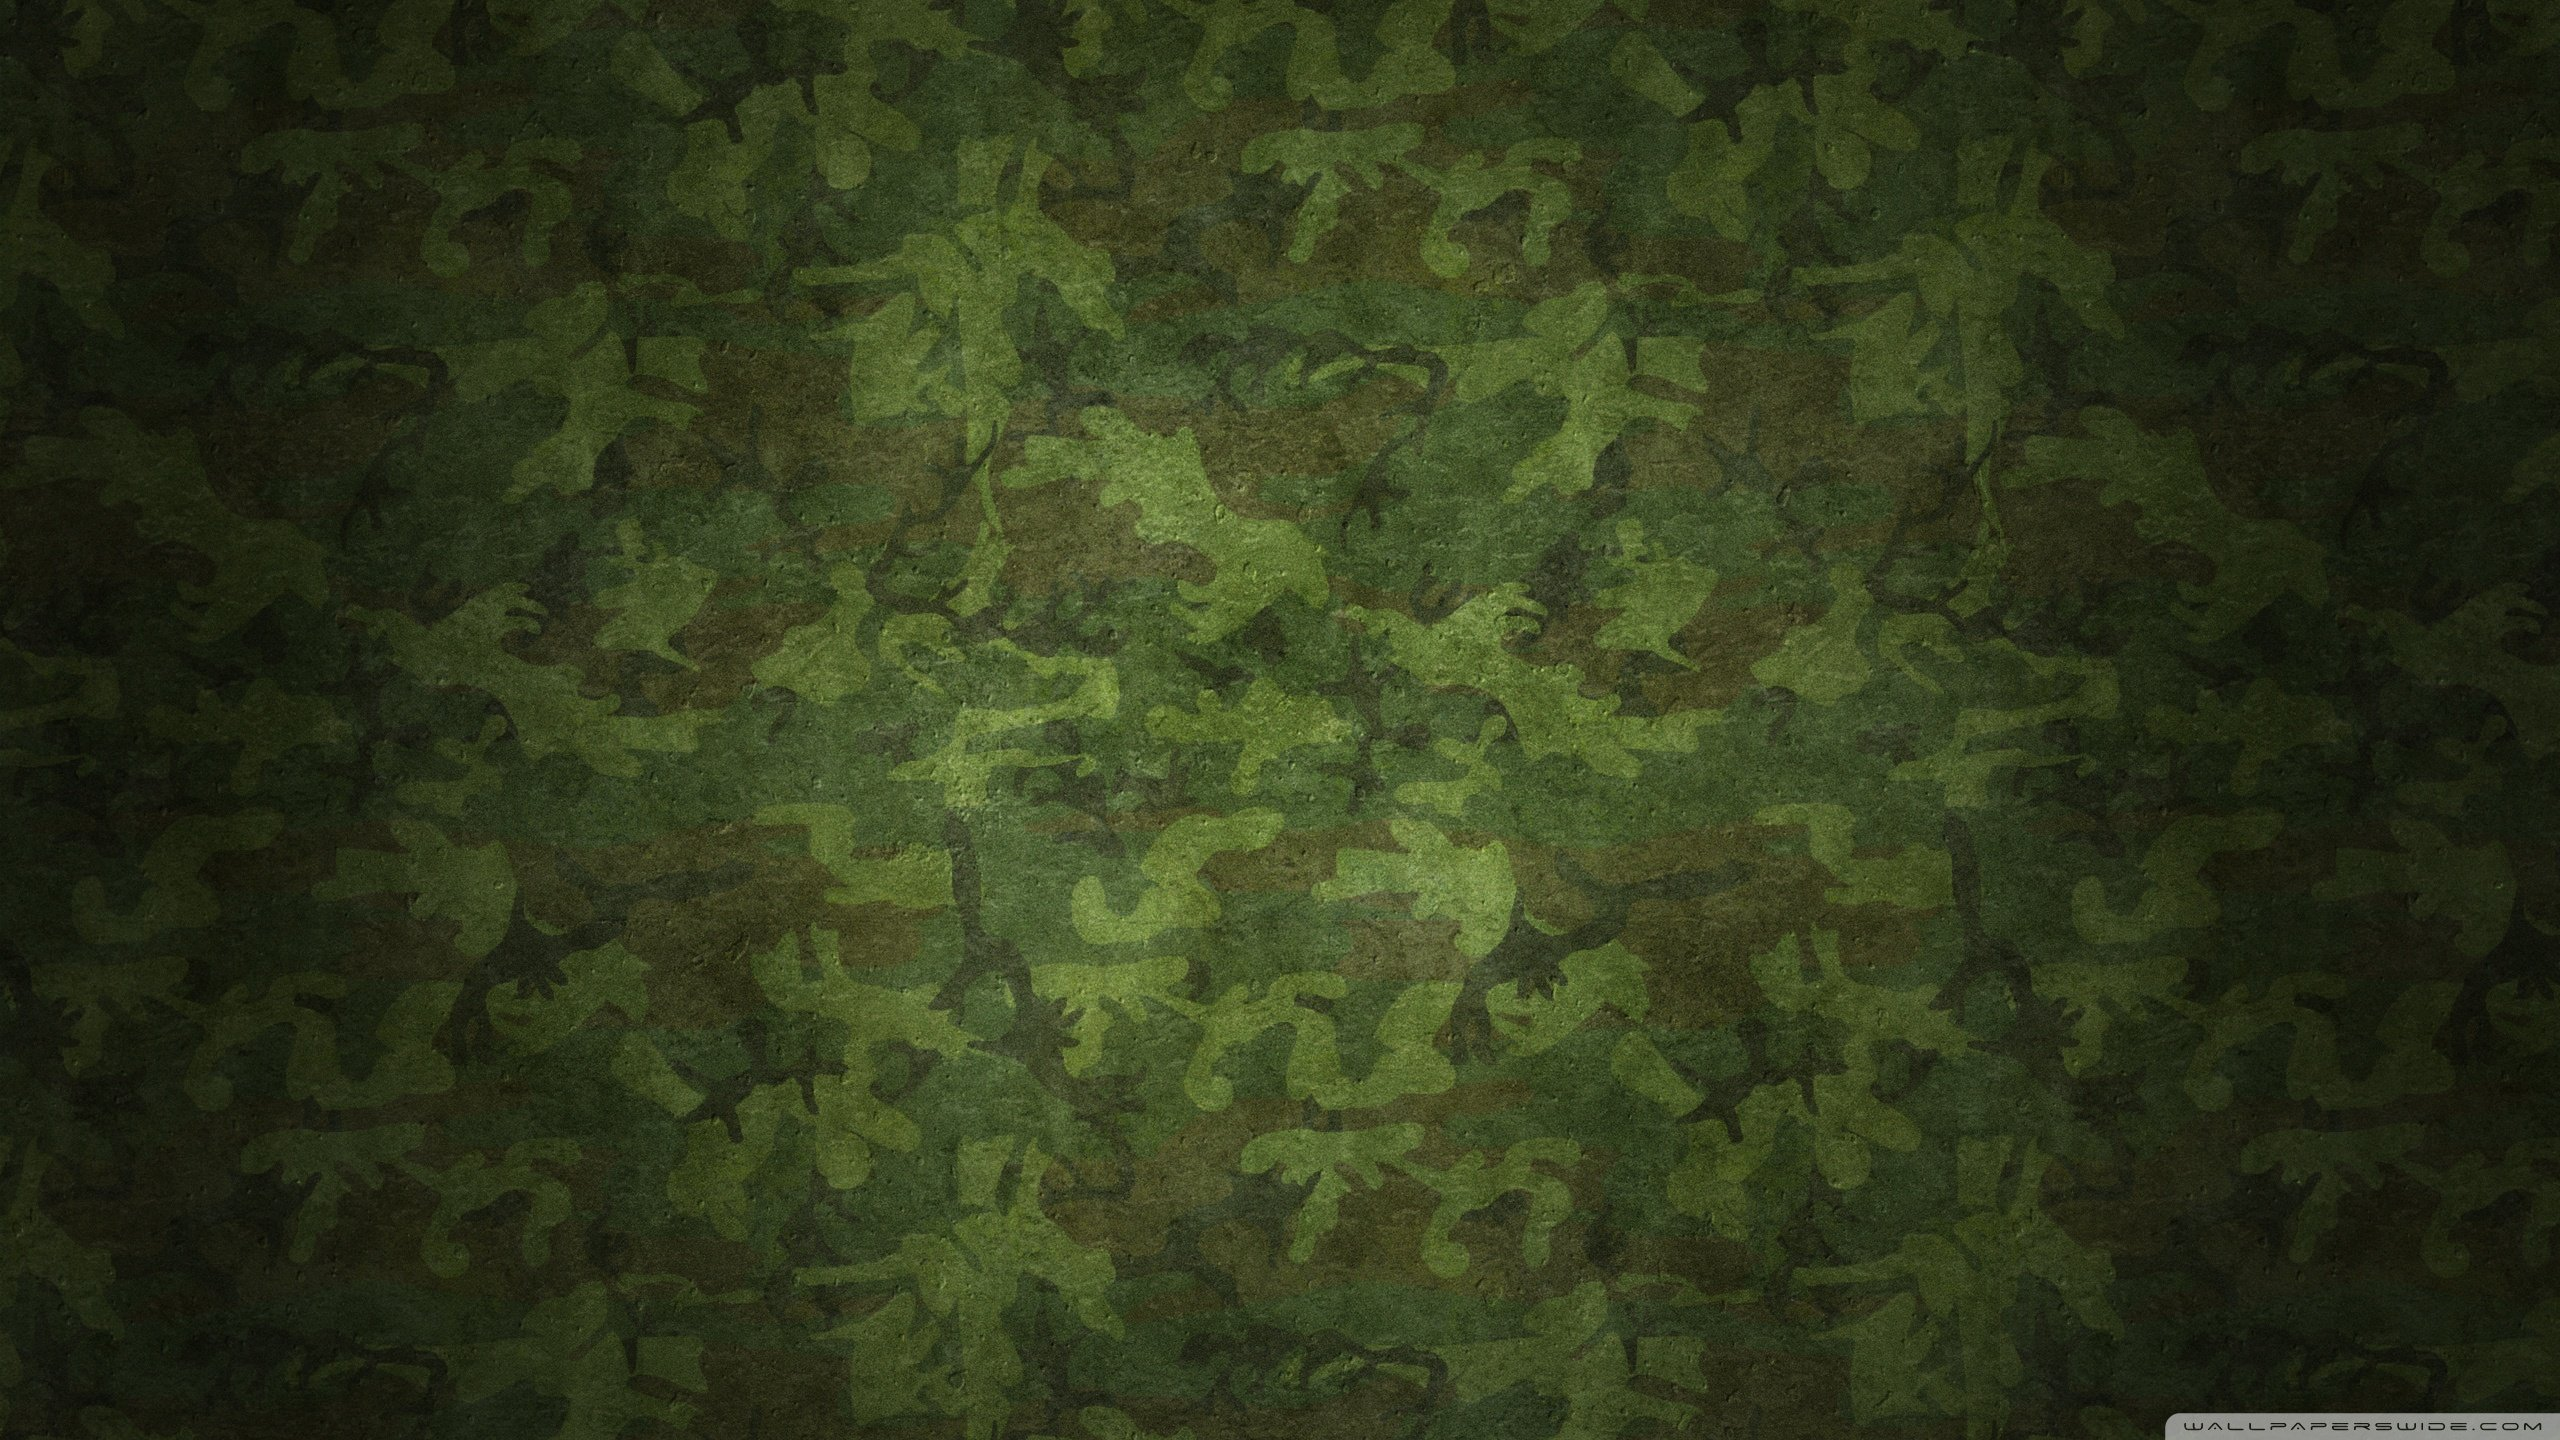 Military Camouflage Patterns HD Wallpaper 2560x1440